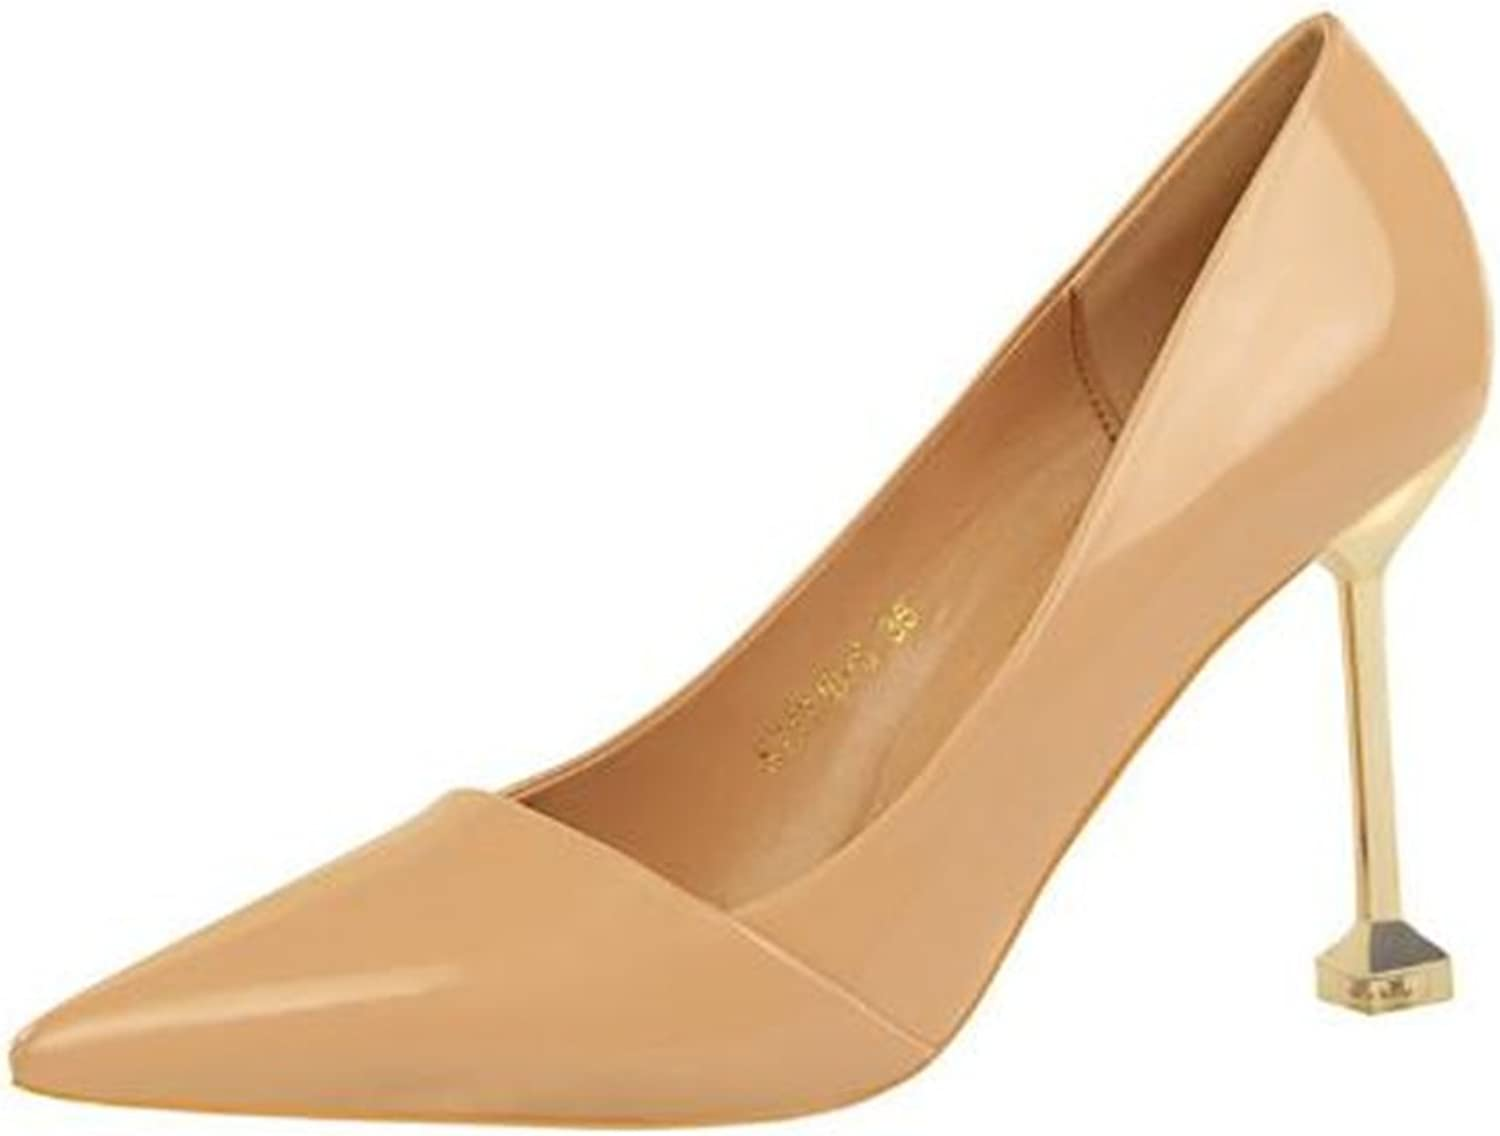 Coollight Women Come-Hither Pointed Toe Stilettos Pumps High Heels Party shoes Work shoes